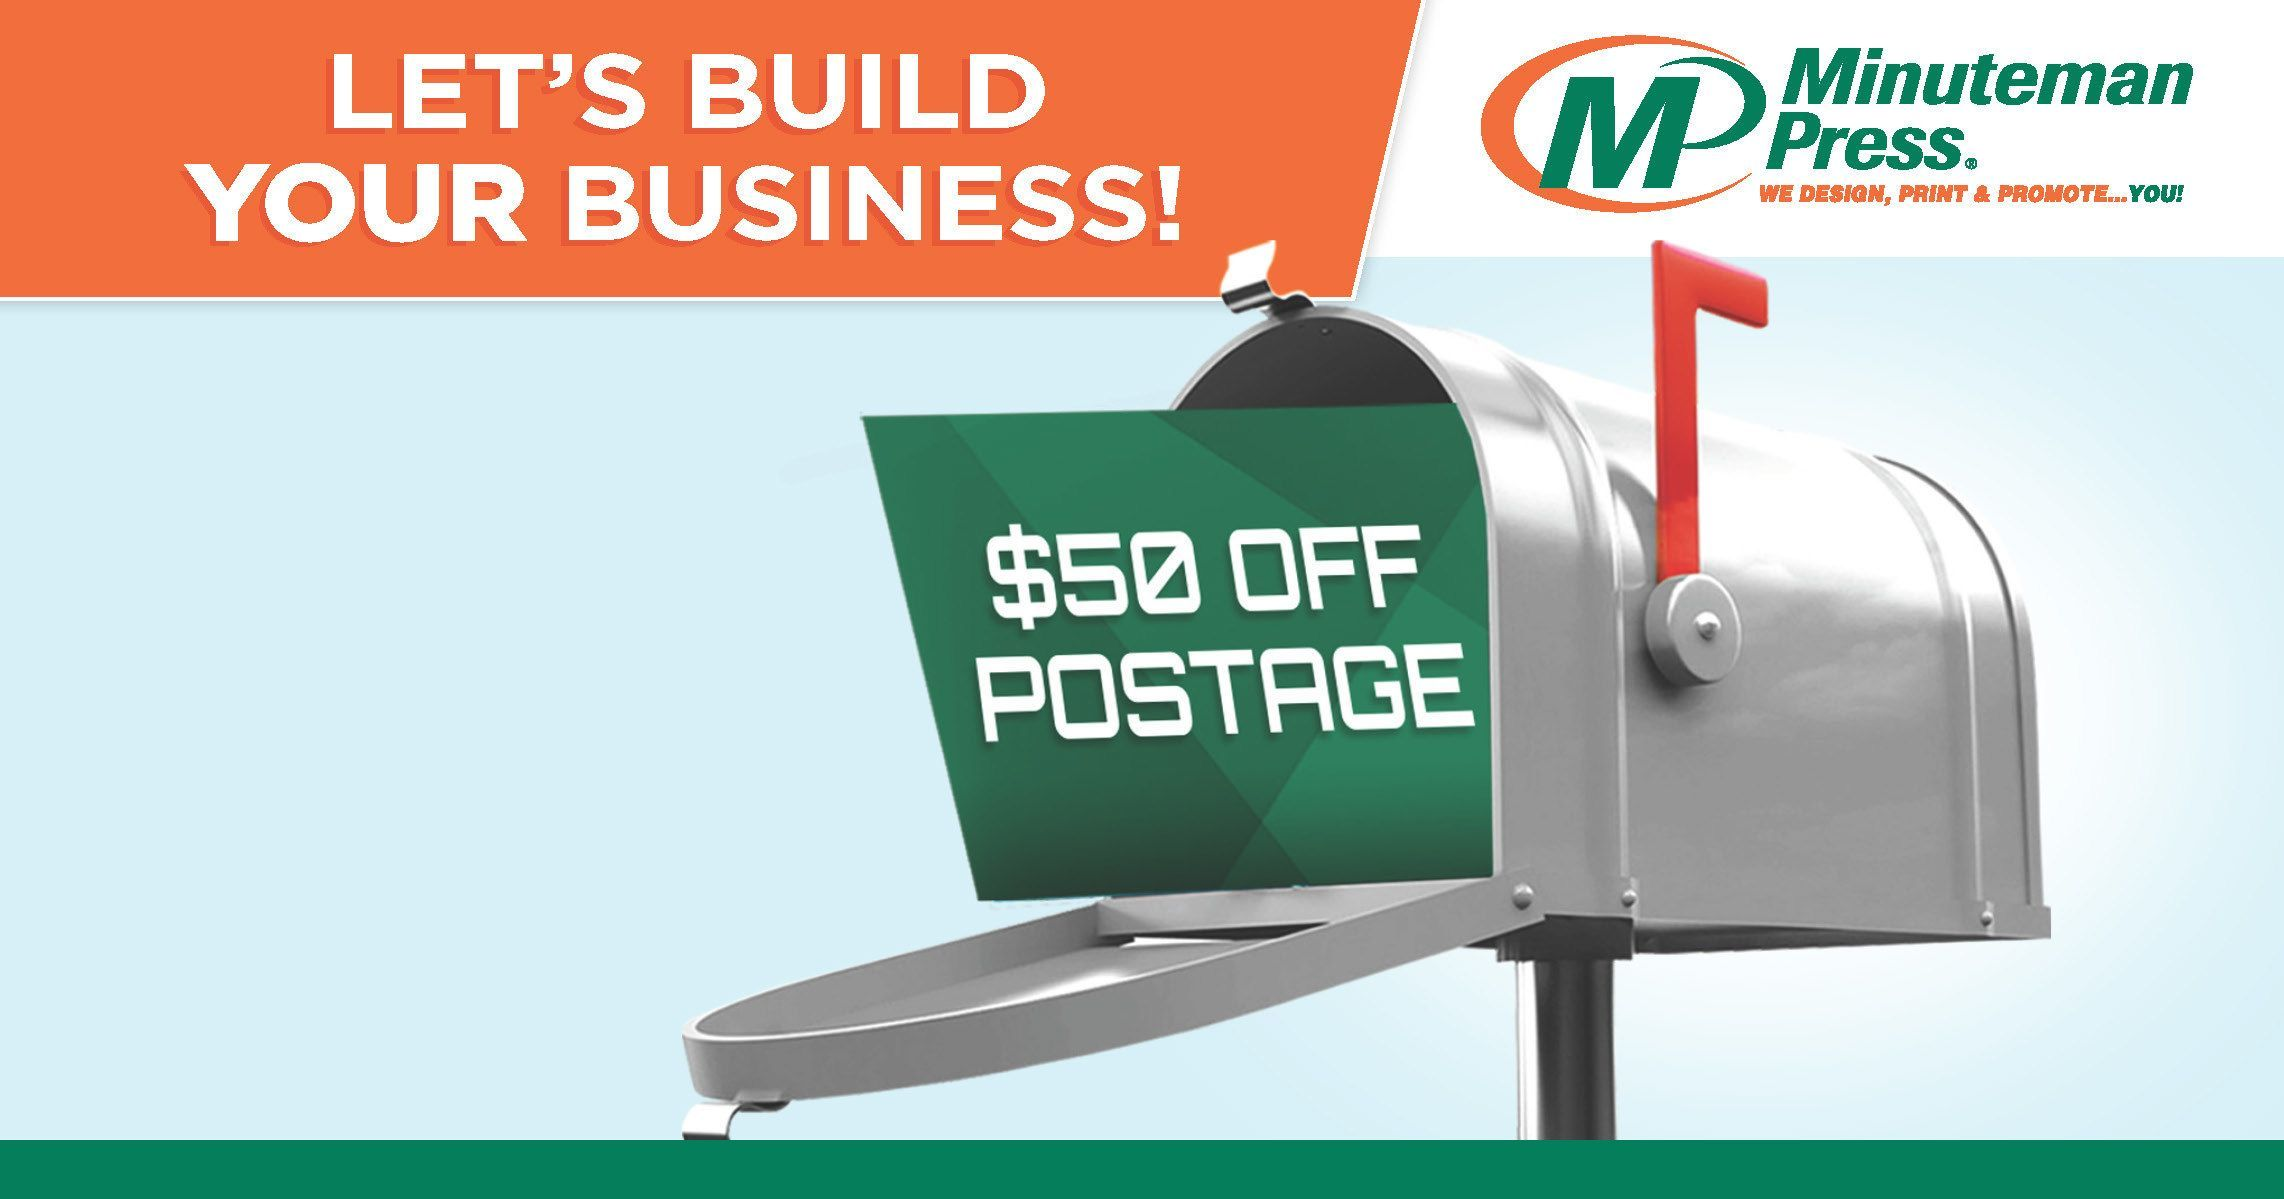 Save *$50 off postage with an Every Door Door Direct mailing